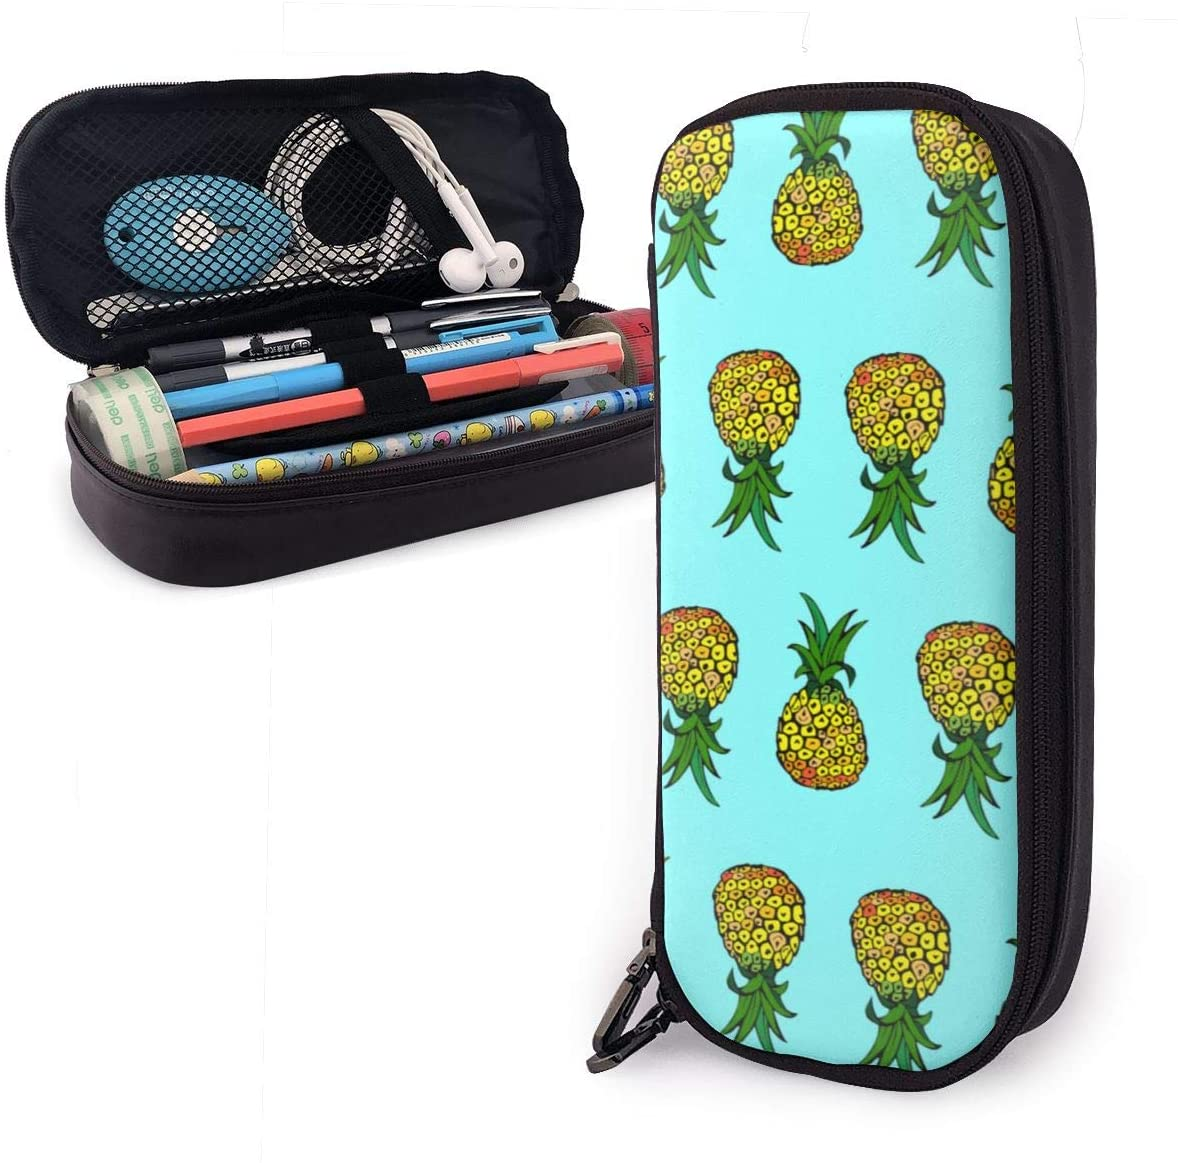 NiYoung Large Capacity Premium PU Leather Storage Pouch Pen Pencil Case Stationery Bag Holder for School Students Office Workers, Sunshine Pineapple